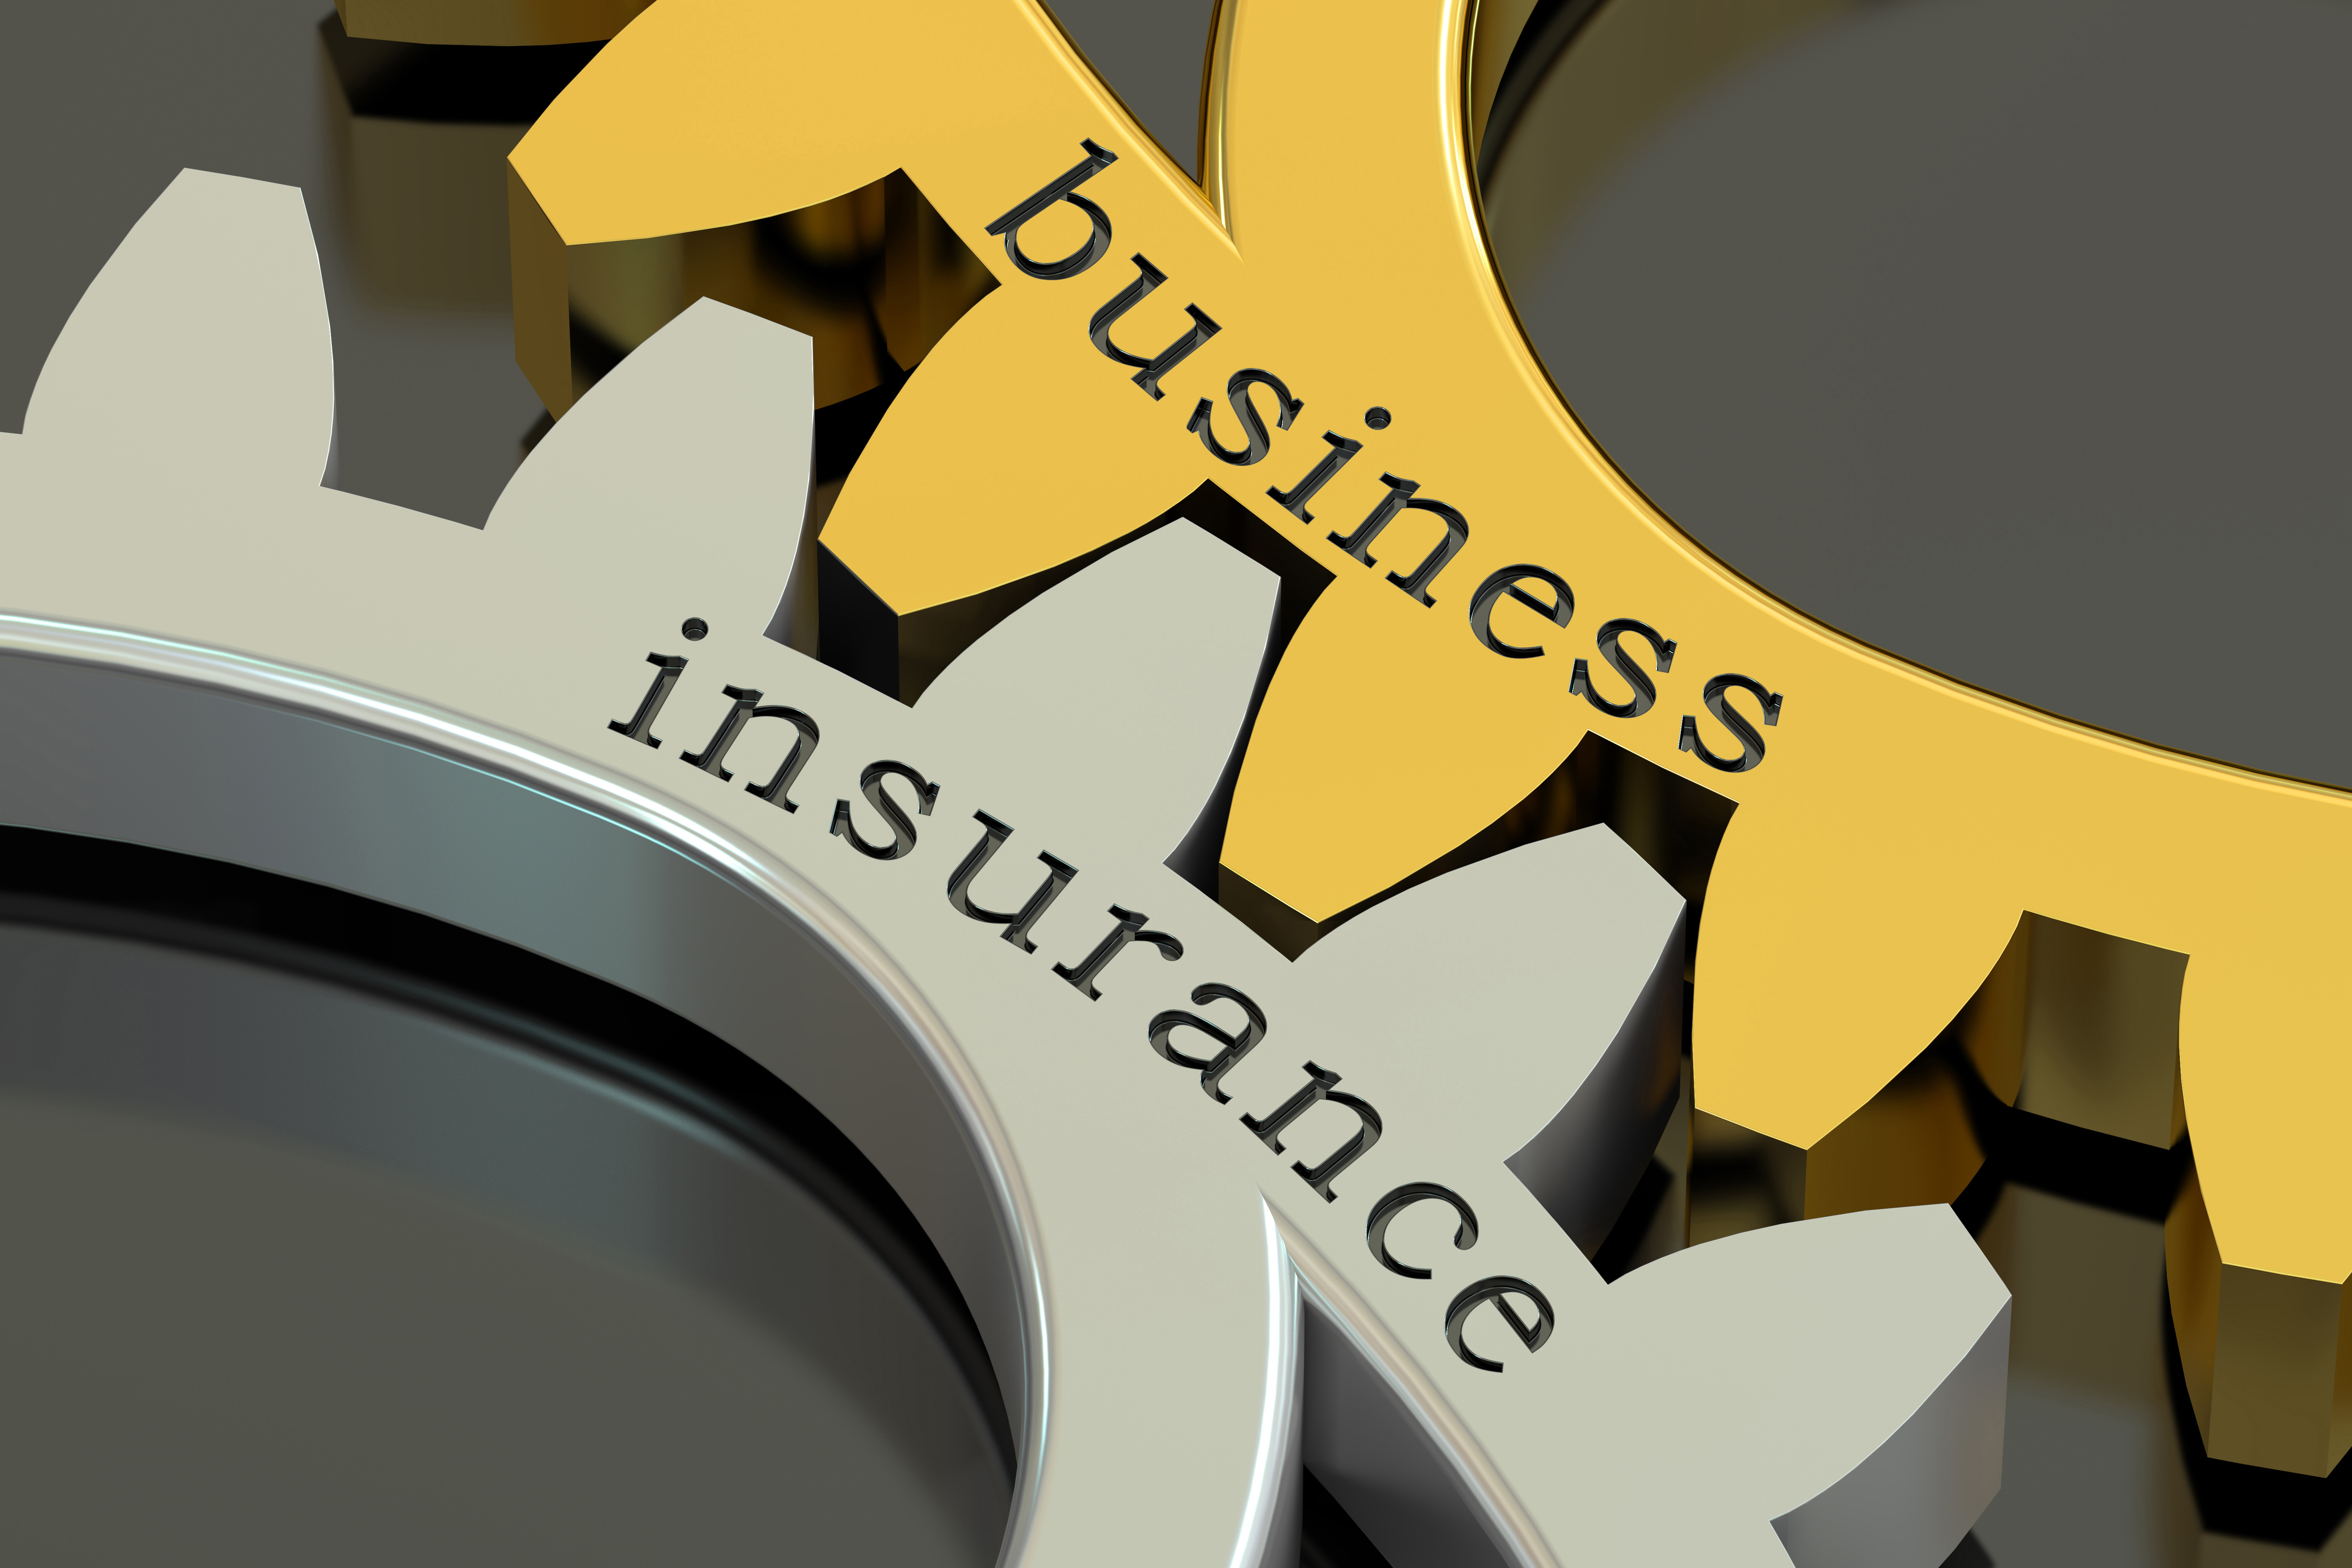 Business Insurance, concept on the gearwheels, 3D rendering